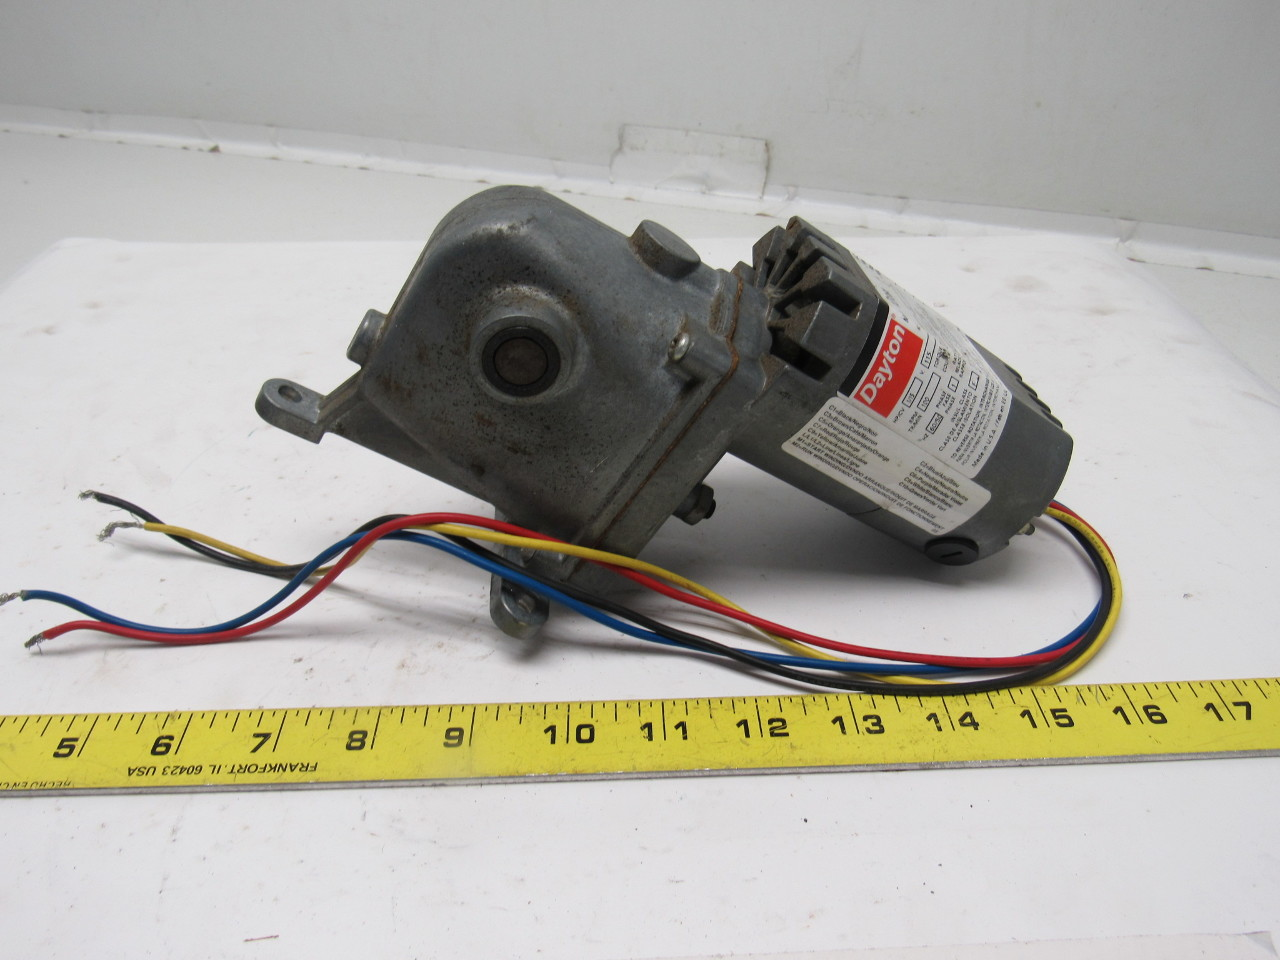 Dayton 1lpz6a ac dc right angle gear motor 115v 1 4a for Right angle dc motor